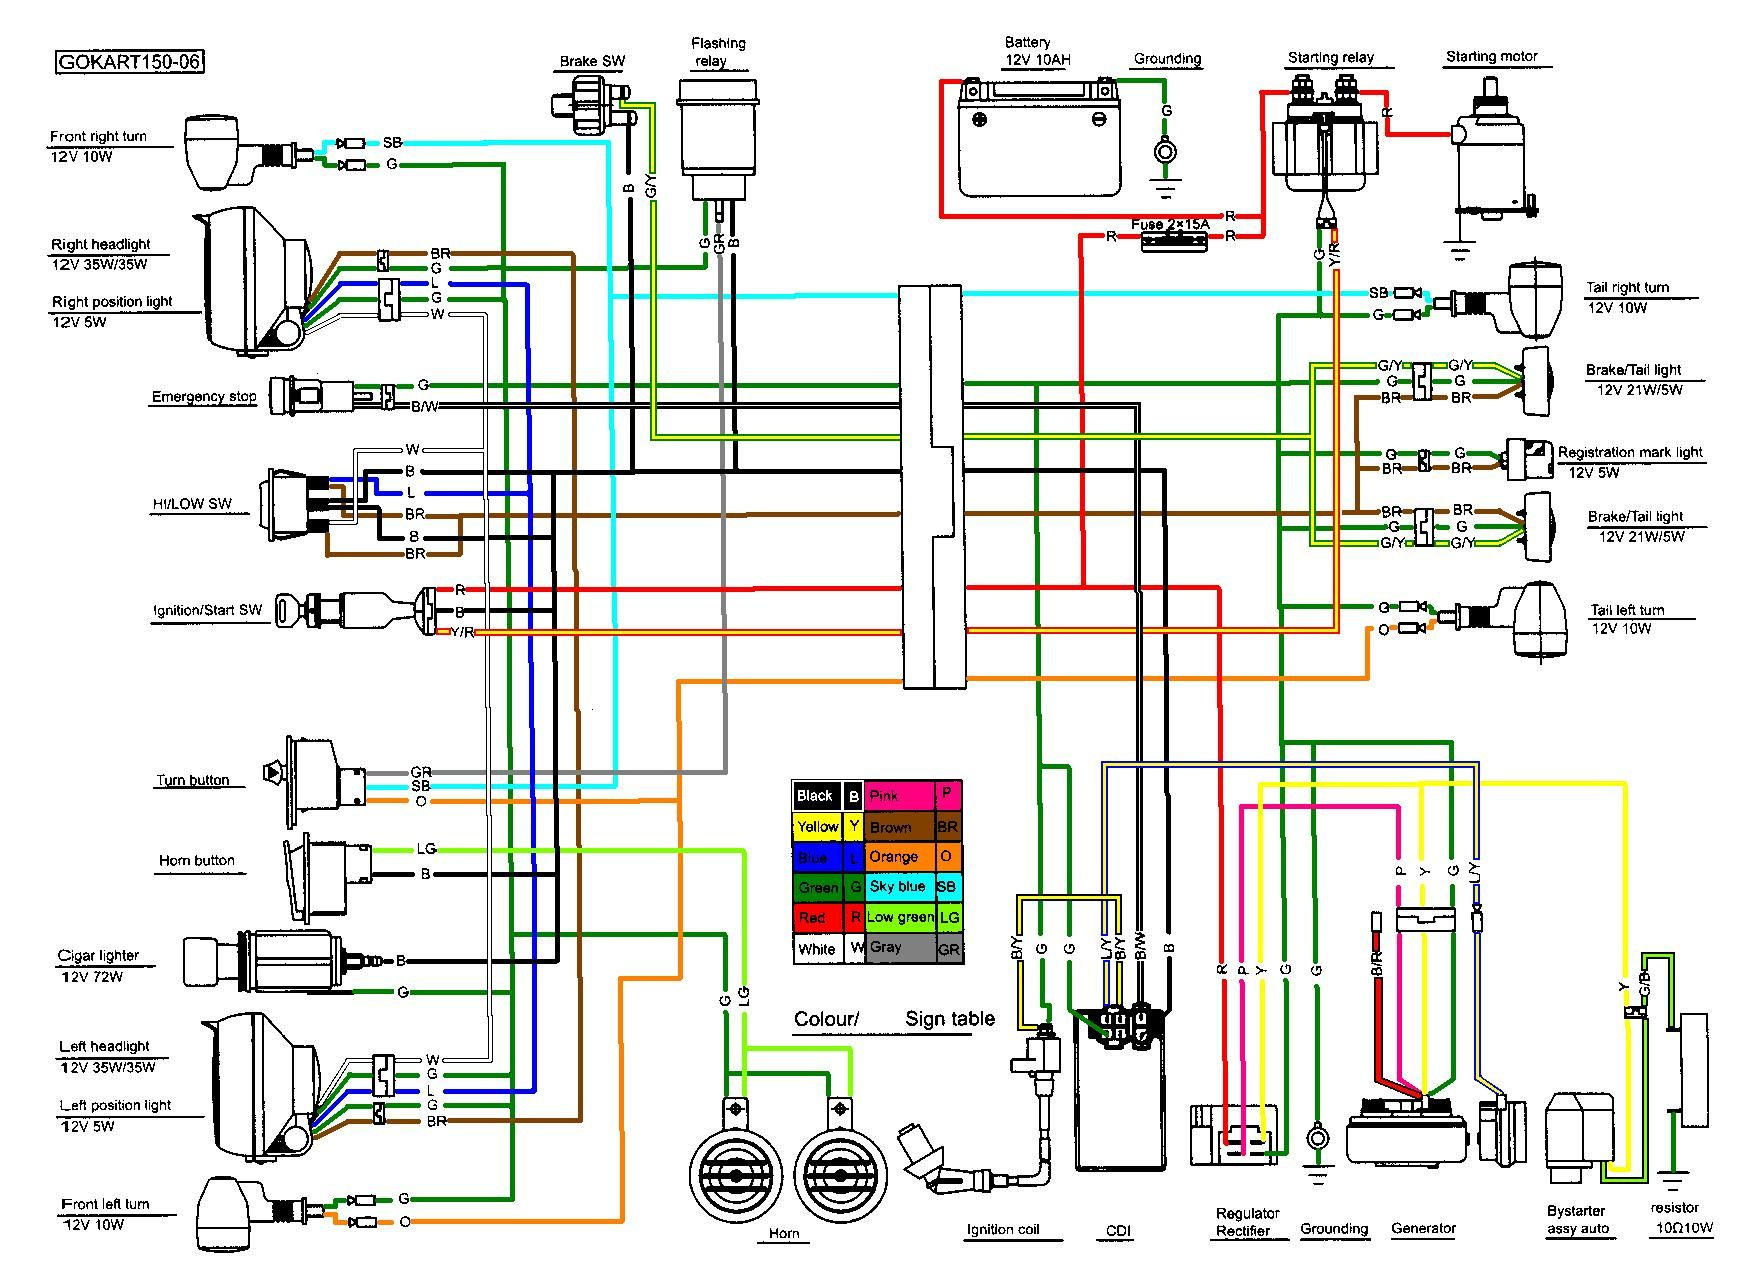 Stupendous Wiring Diagram Gy6 Schematic Download Gy6 Ignition Throughout 150Cc Wiring Digital Resources Spoatbouhousnl